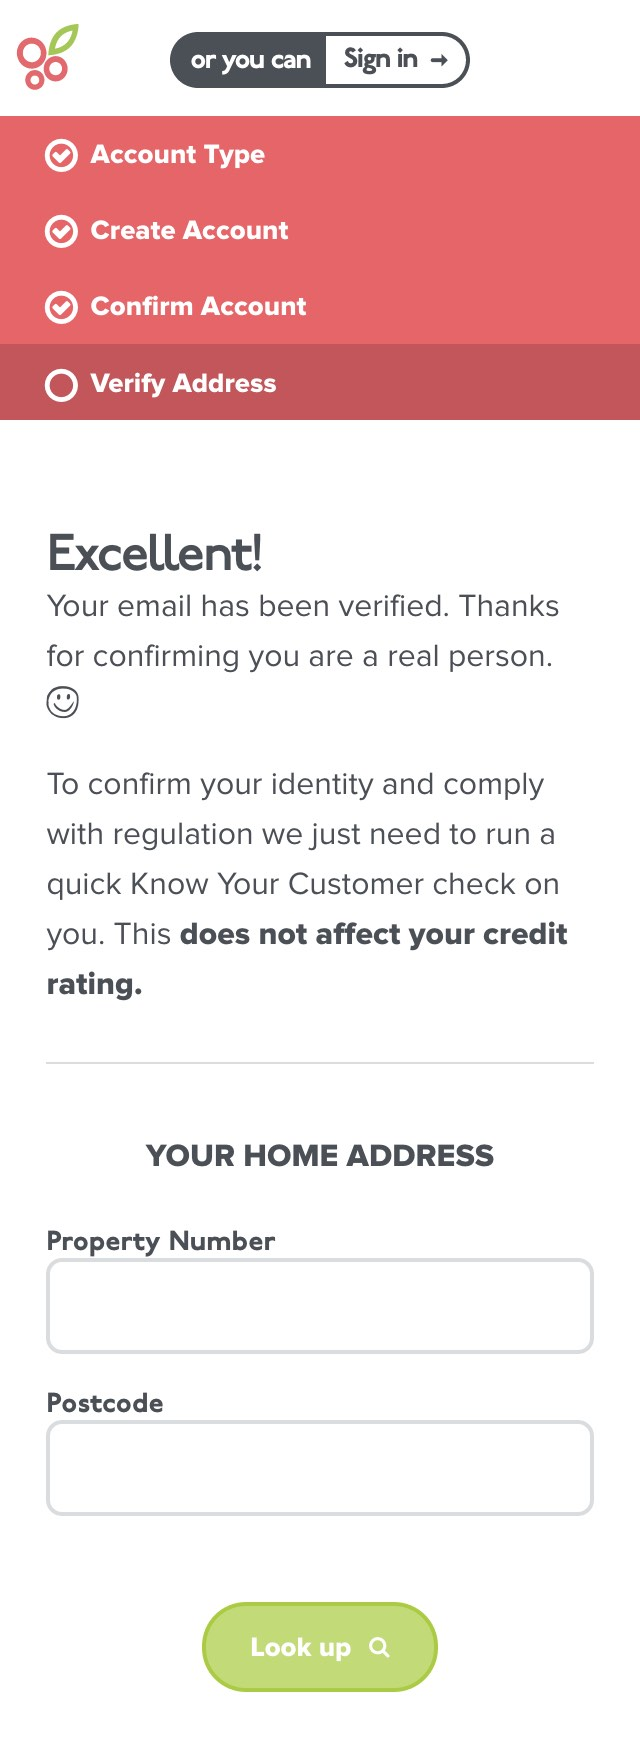 Mobile view of the address look-up form